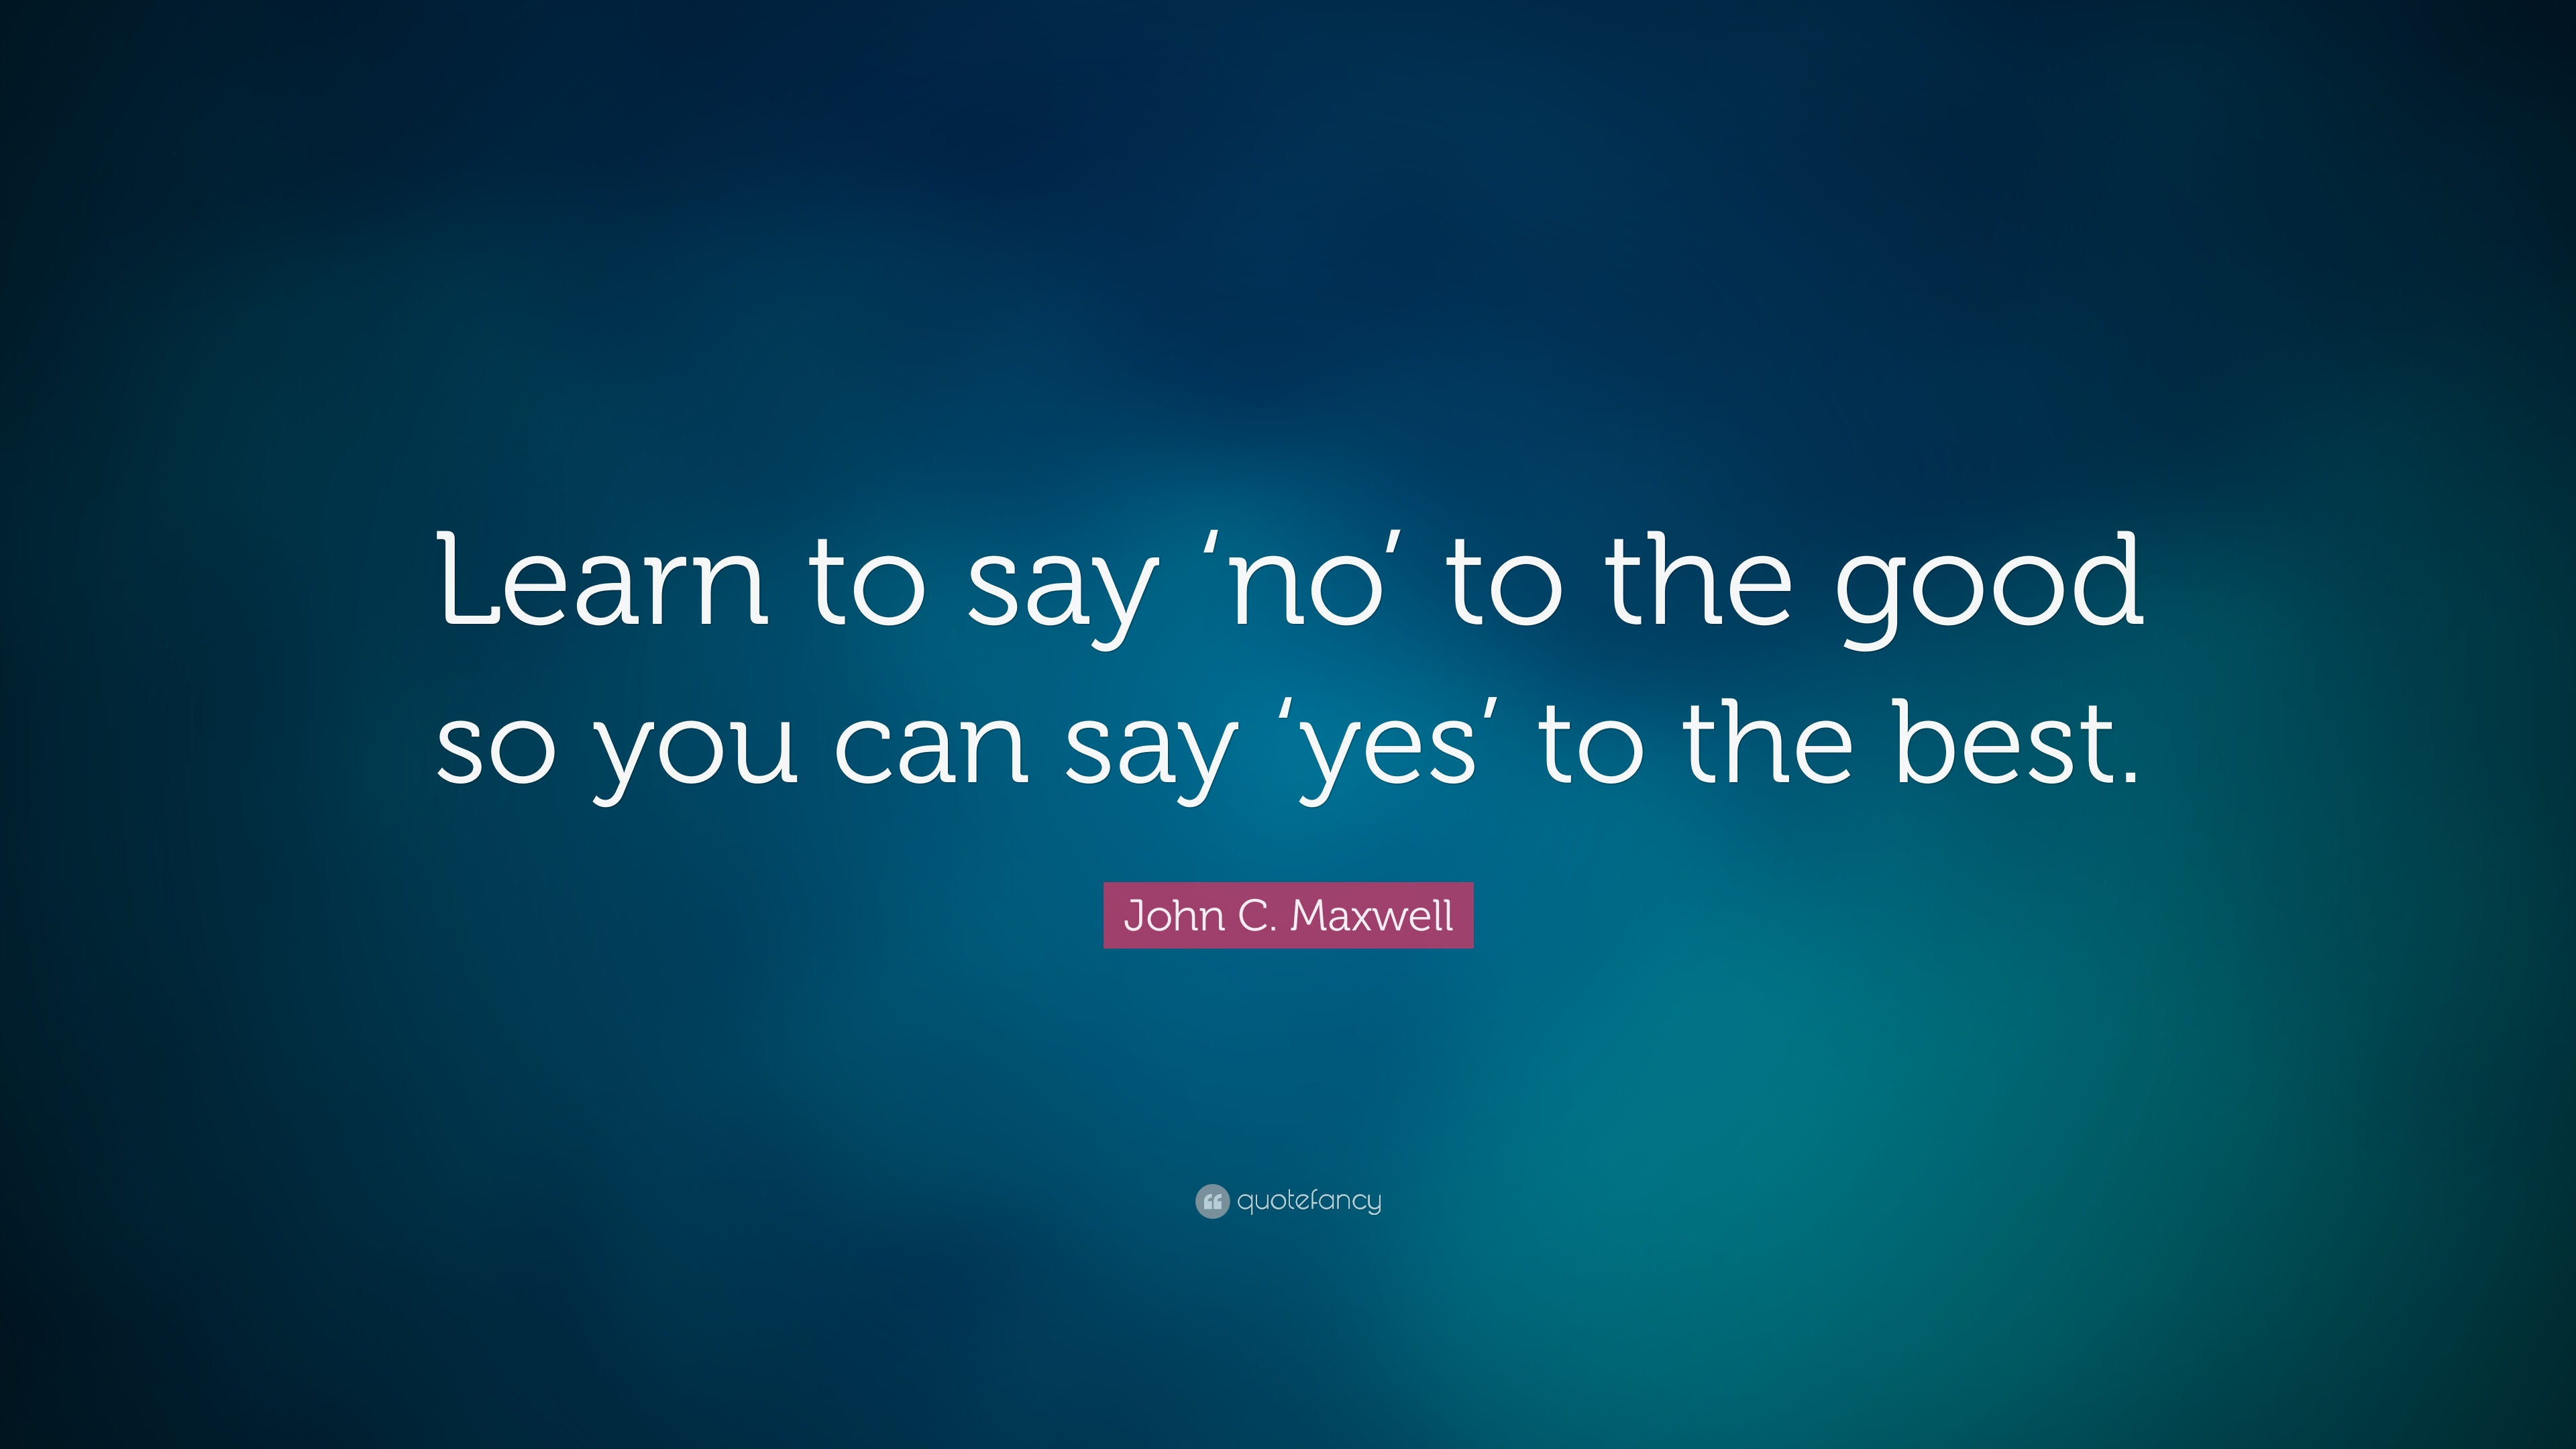 john c maxwell quote learn to say no to the good so you can say